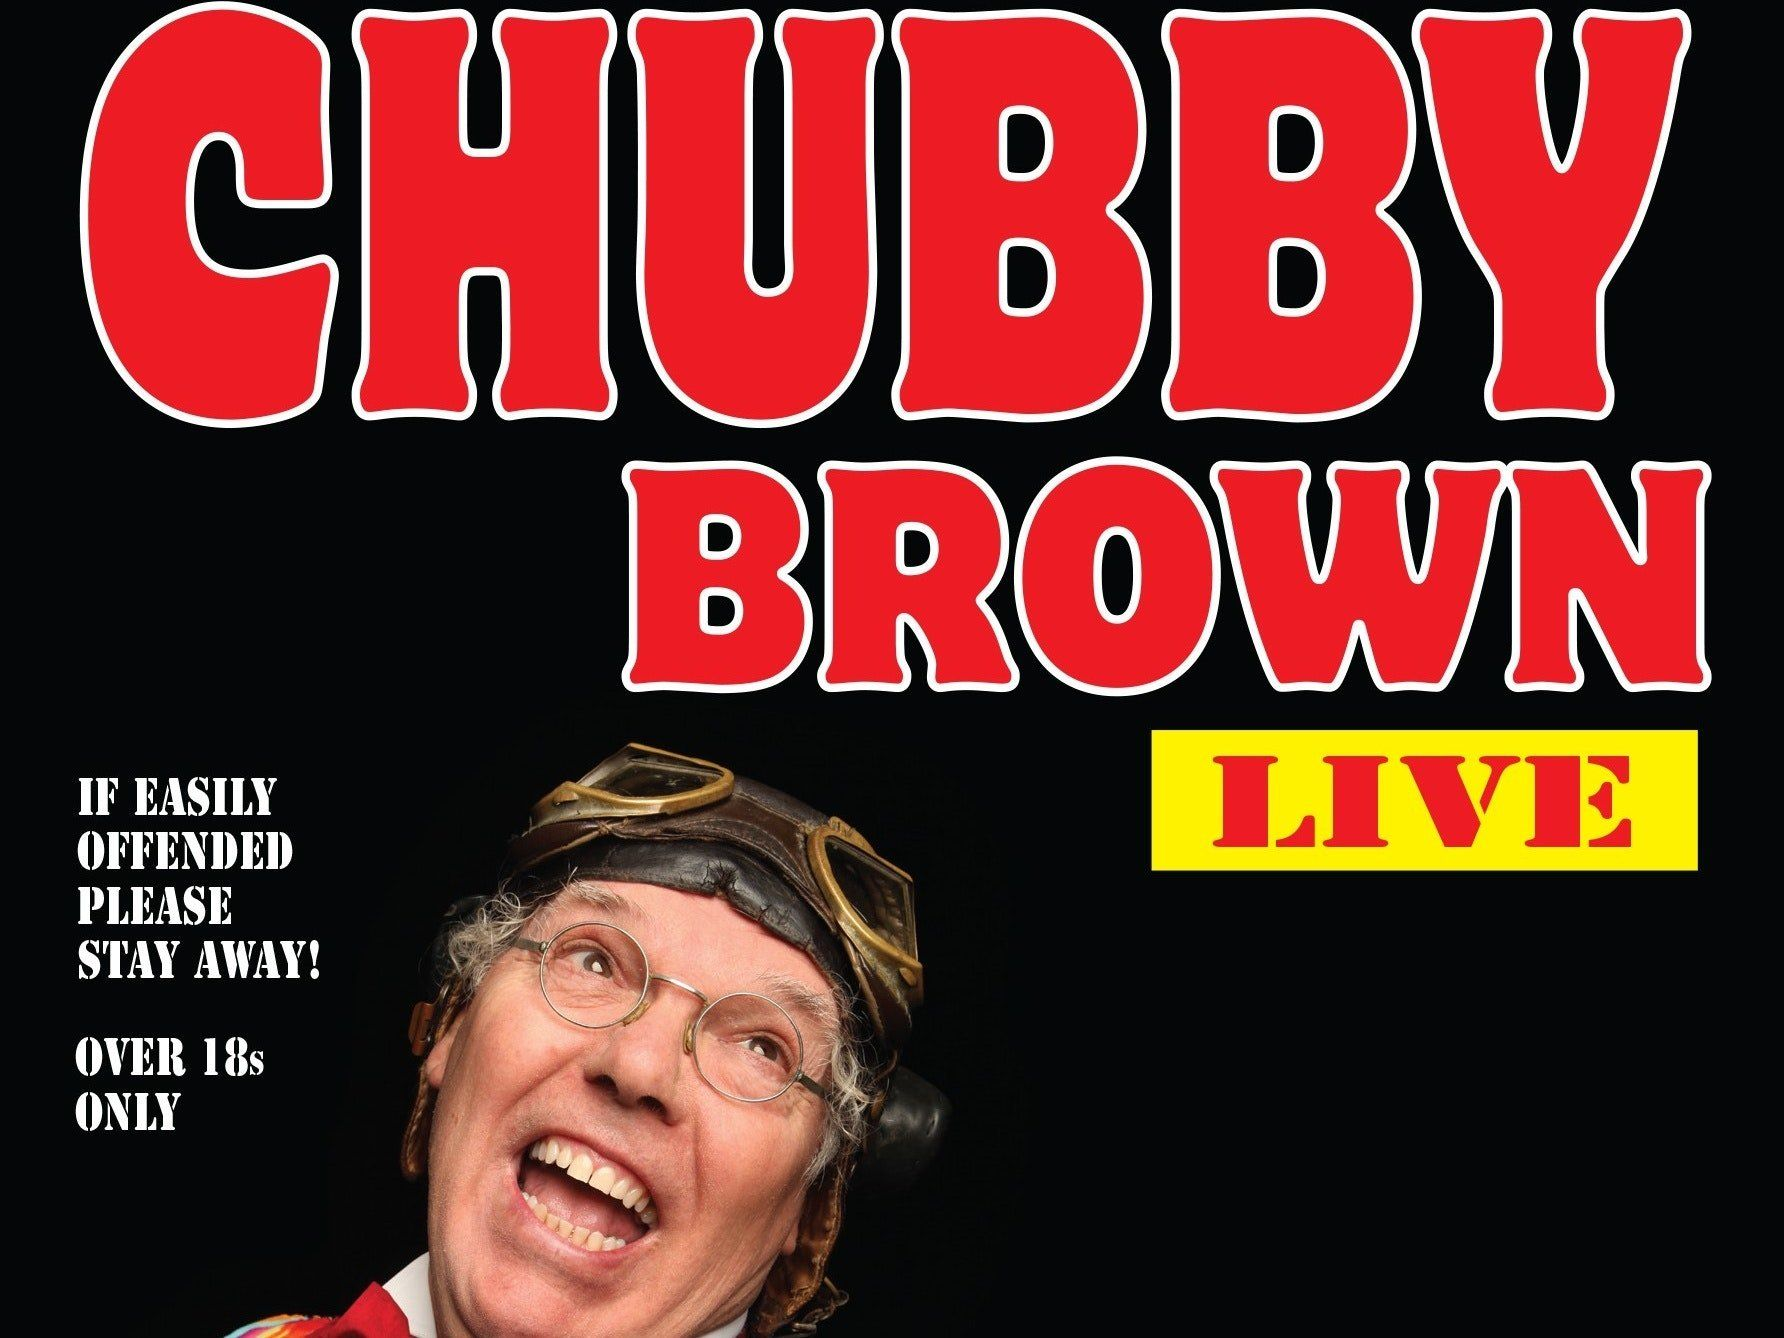 Roy chubby brown ive